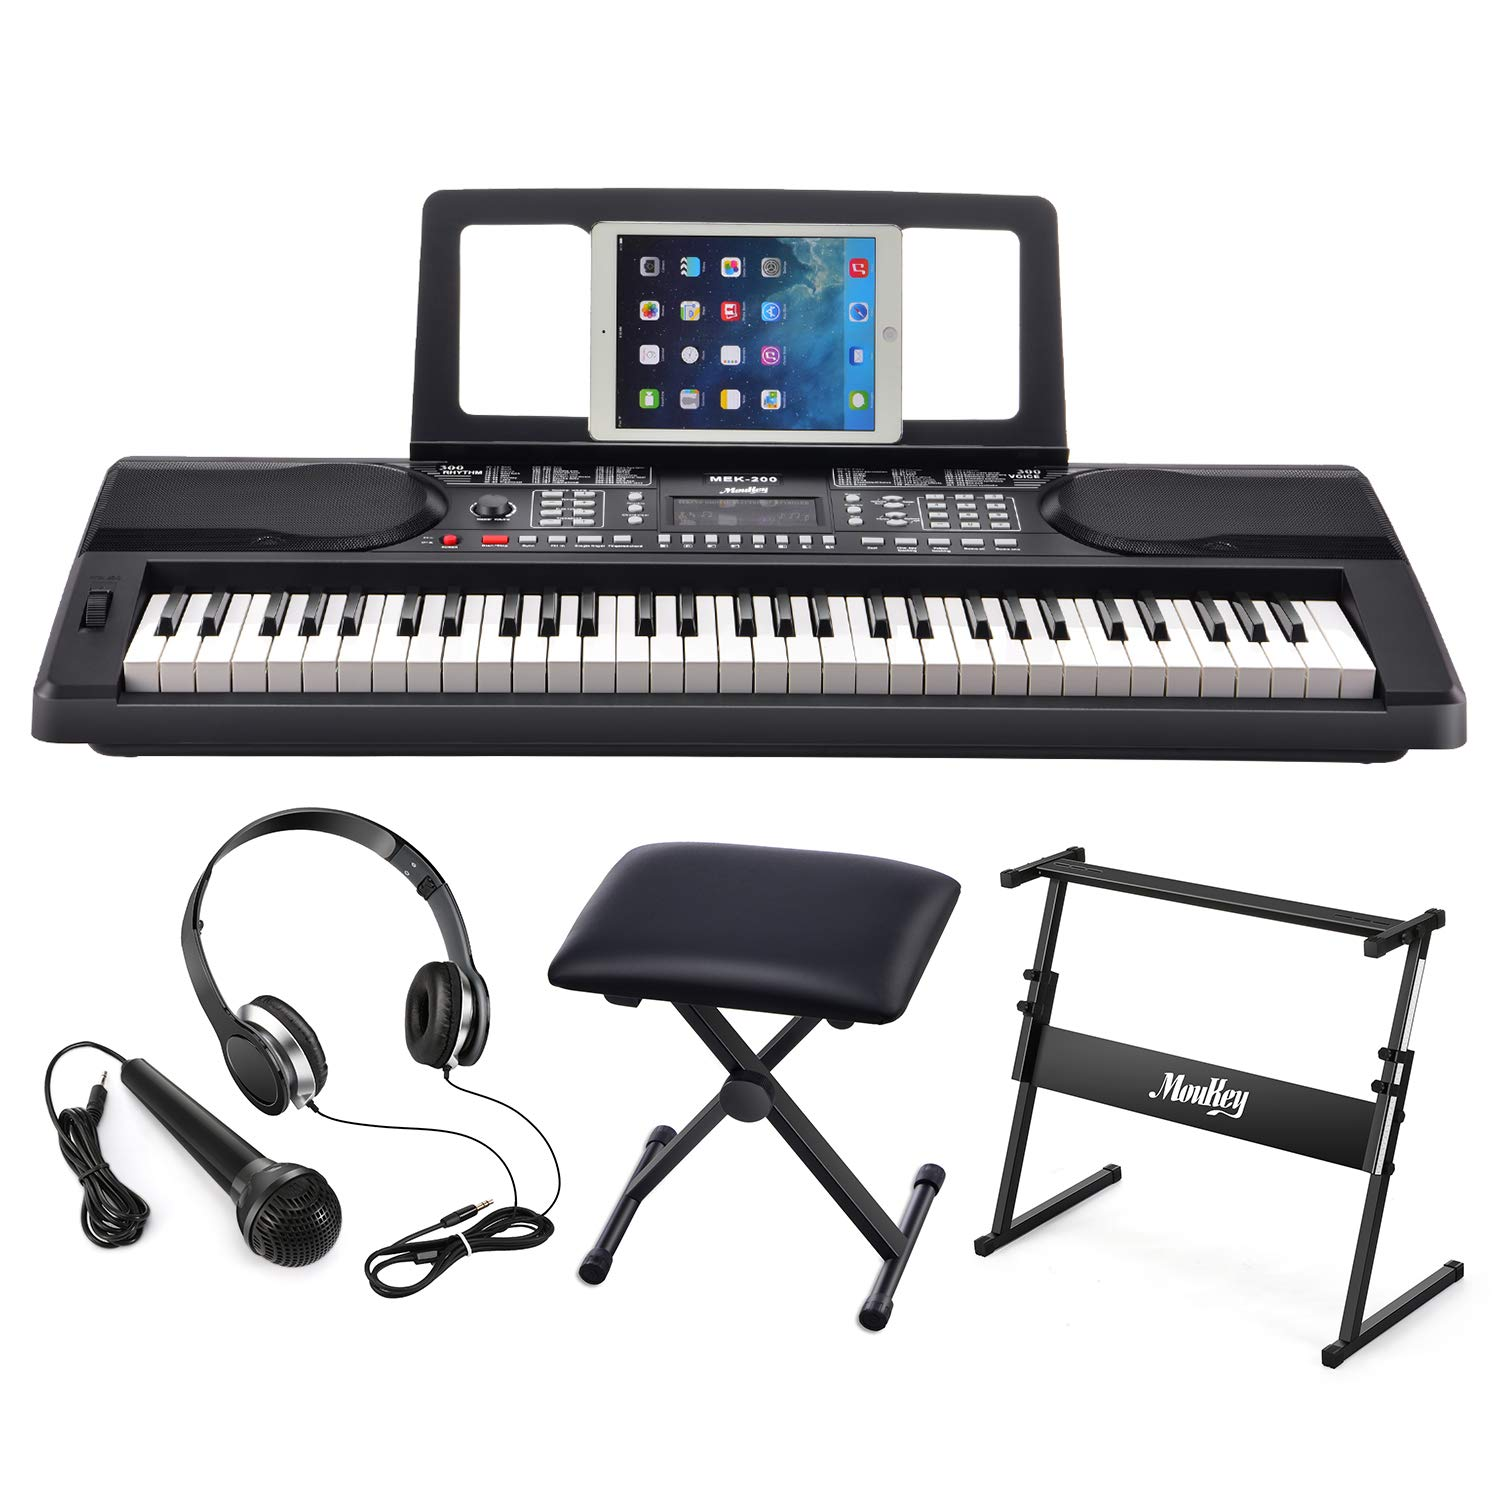 Moukey MEK-200 Electric Keyboard Portable Piano Keyboard Music Kit with Stand, Bench, Headphone, Microphone & Sticker, 61 Key Keyboard, Black by Moukey